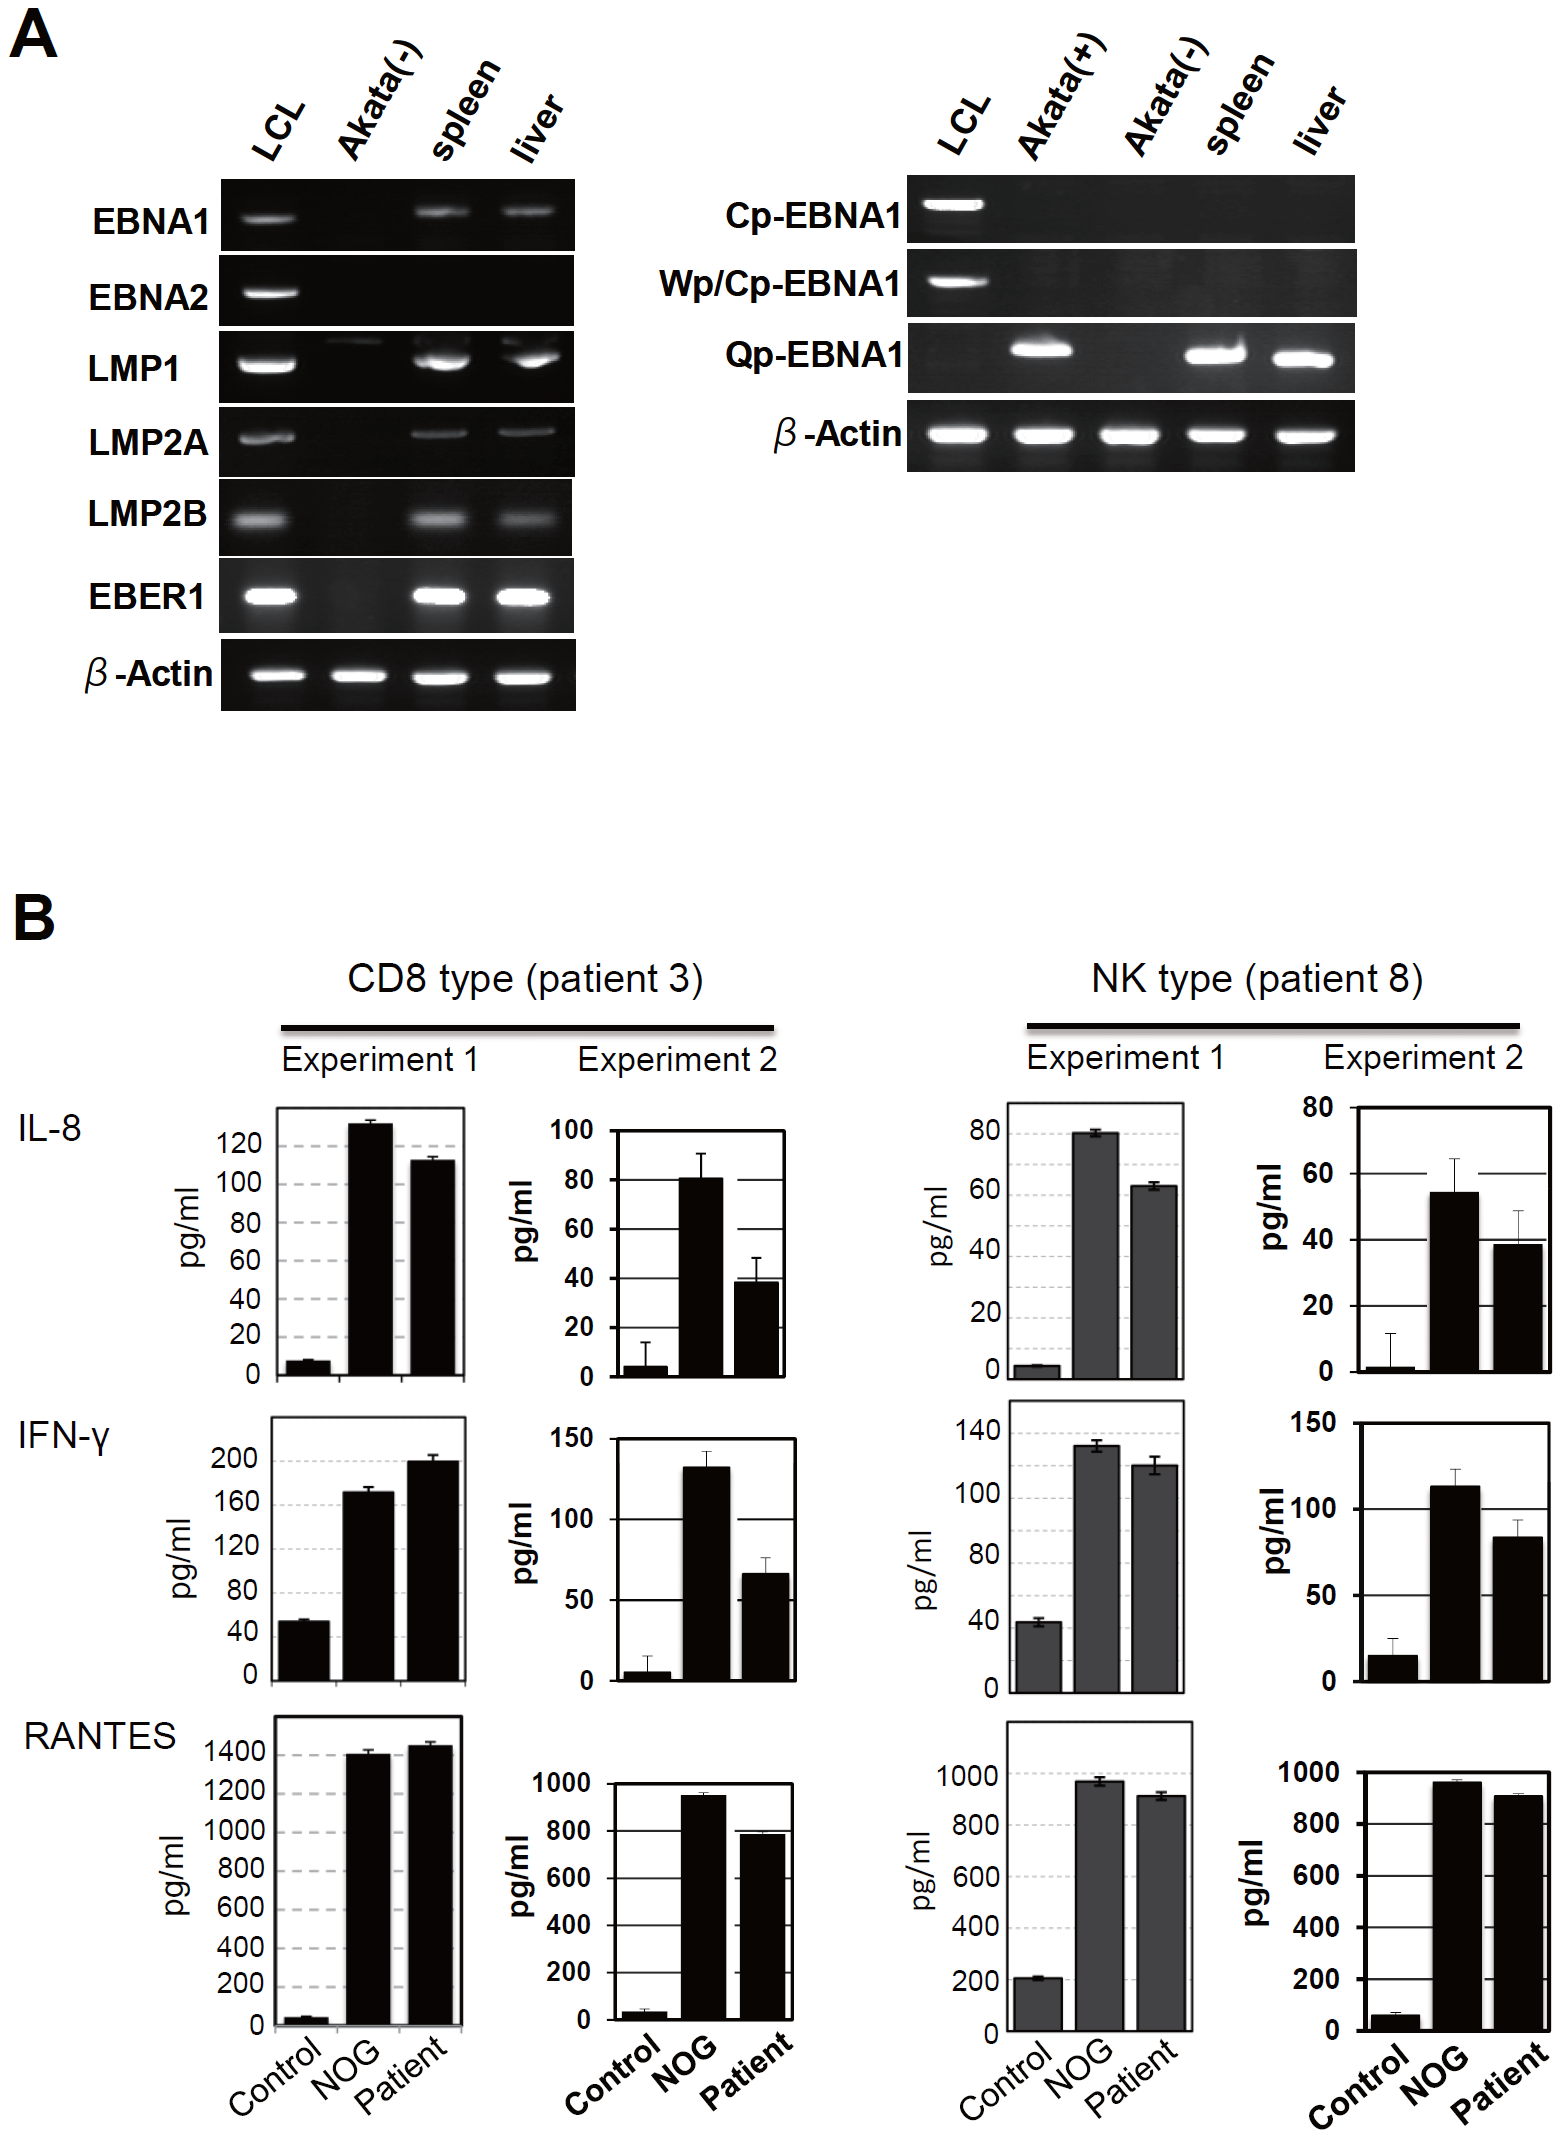 Analyses on the latent EBV gene expression and cytokine production in NOG mice transplanted with PBMC of CAEBV patients.